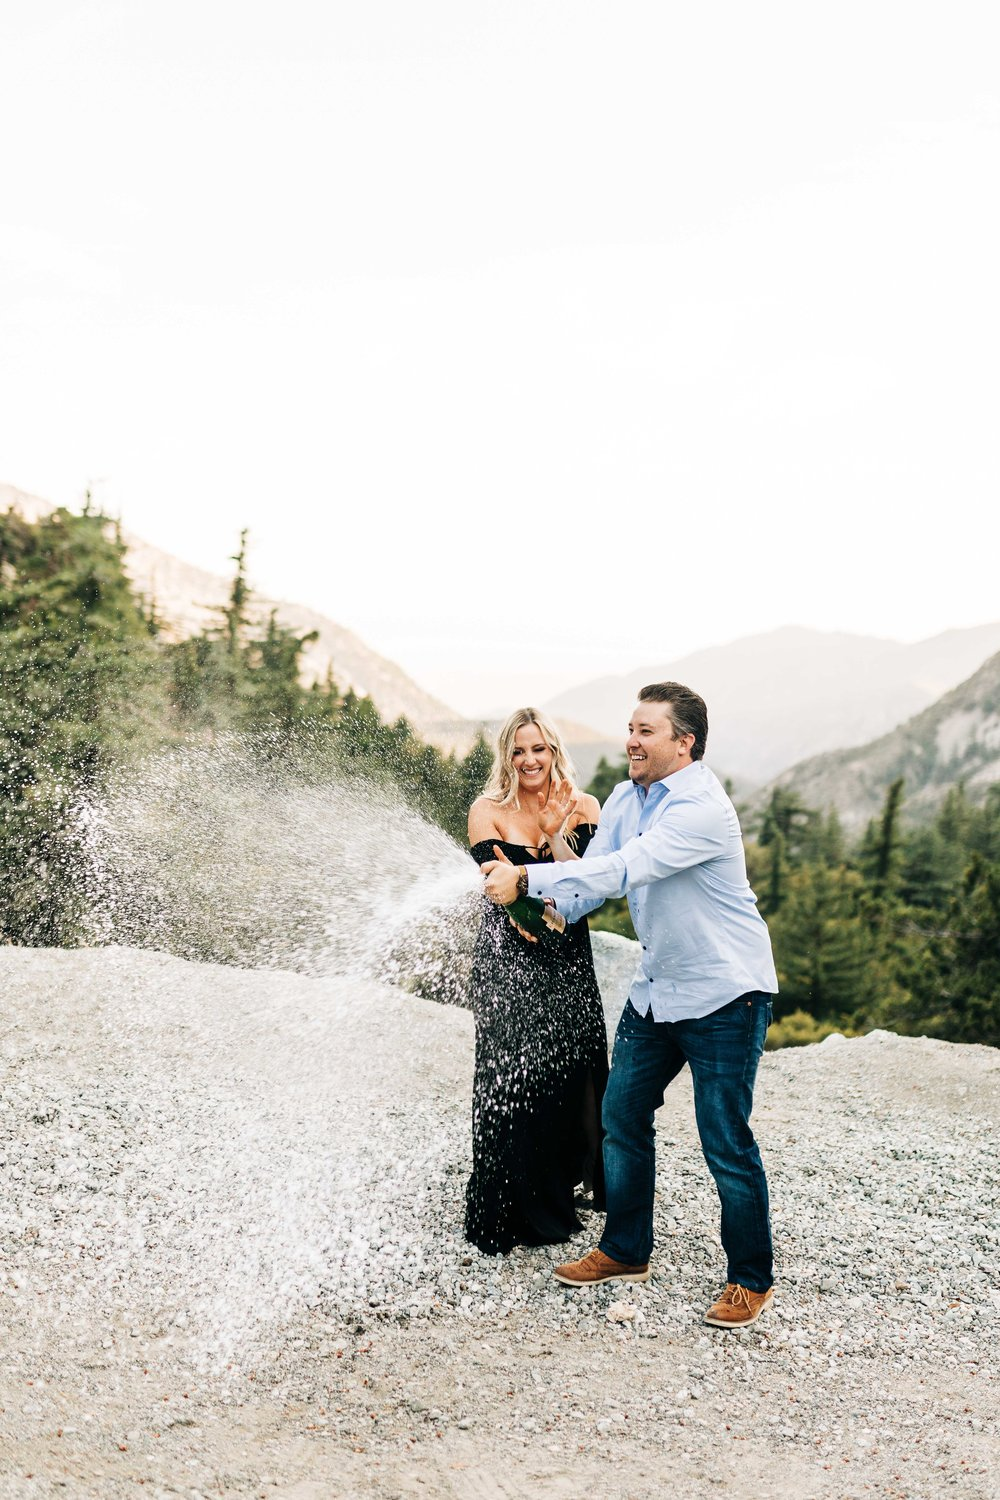 Rachael&Keith-Mt-Mount-Baldy-Engagement-Photos-Clarisse-Rae-Southern-California-Wedding-Photographer_33